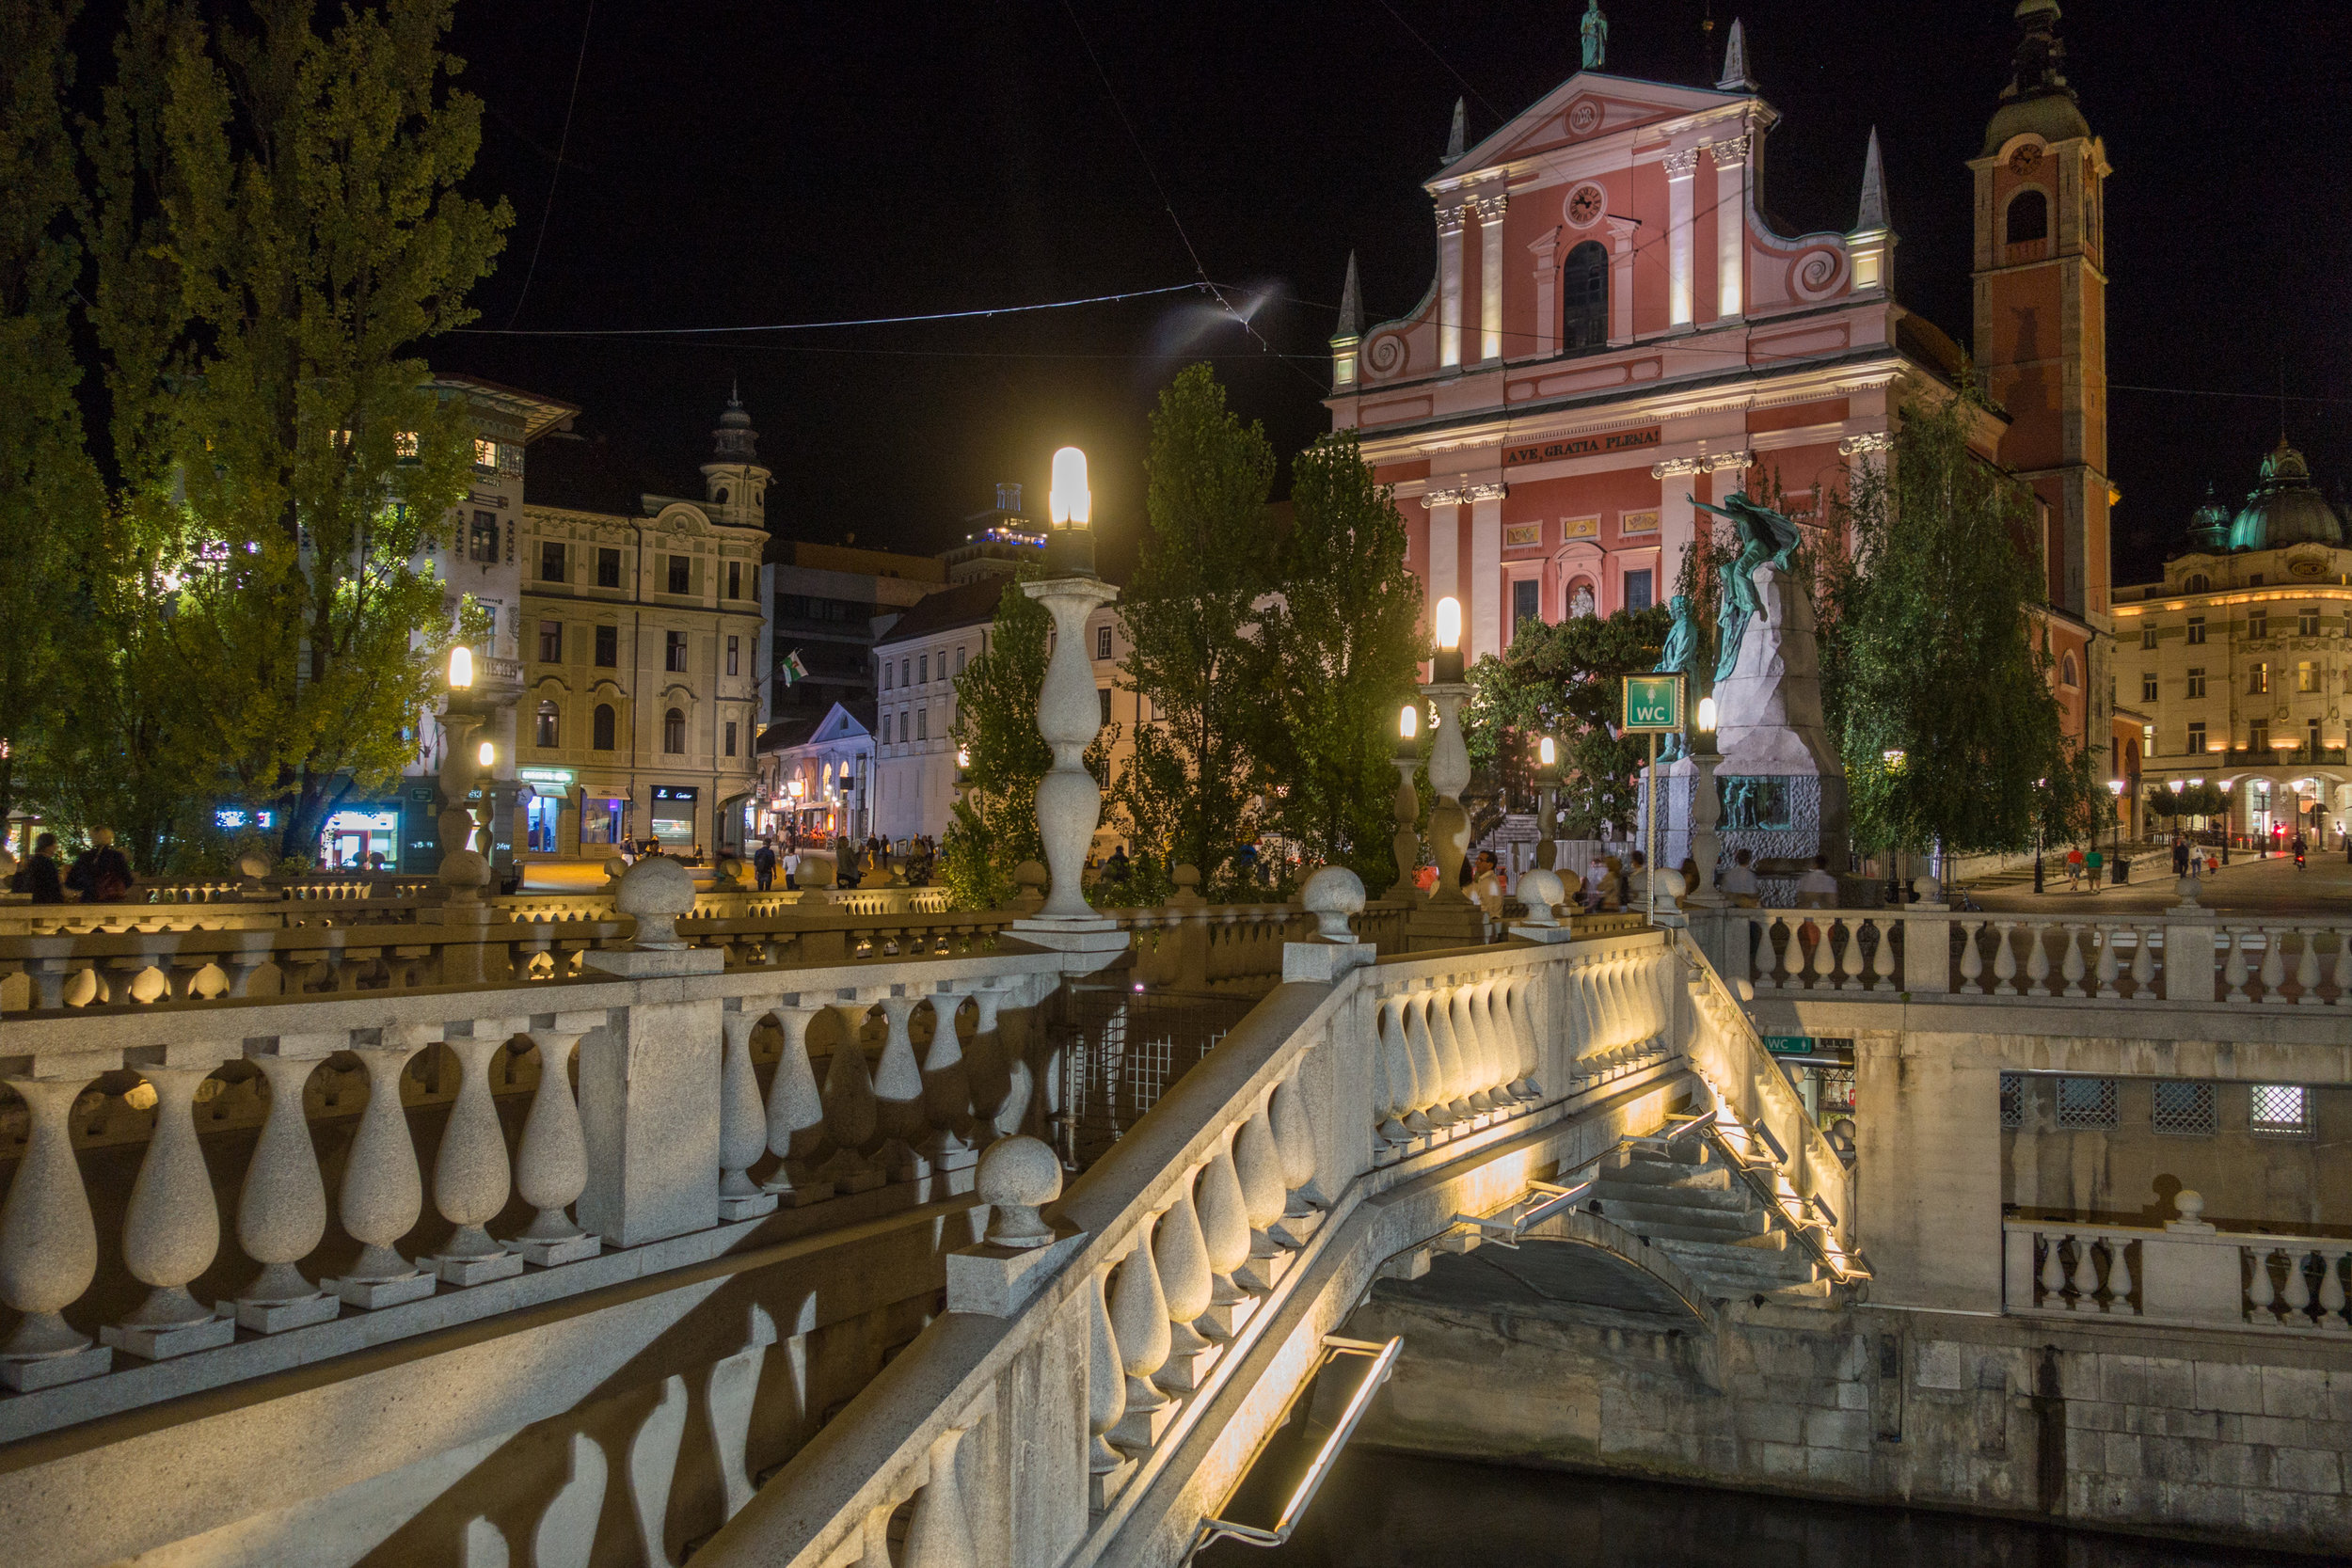 5.)Ljubljana, Slovenia - Stay in the Tivoli Park overnight, then when you are ready to leave, get up early and make the drive to Lake Bled.